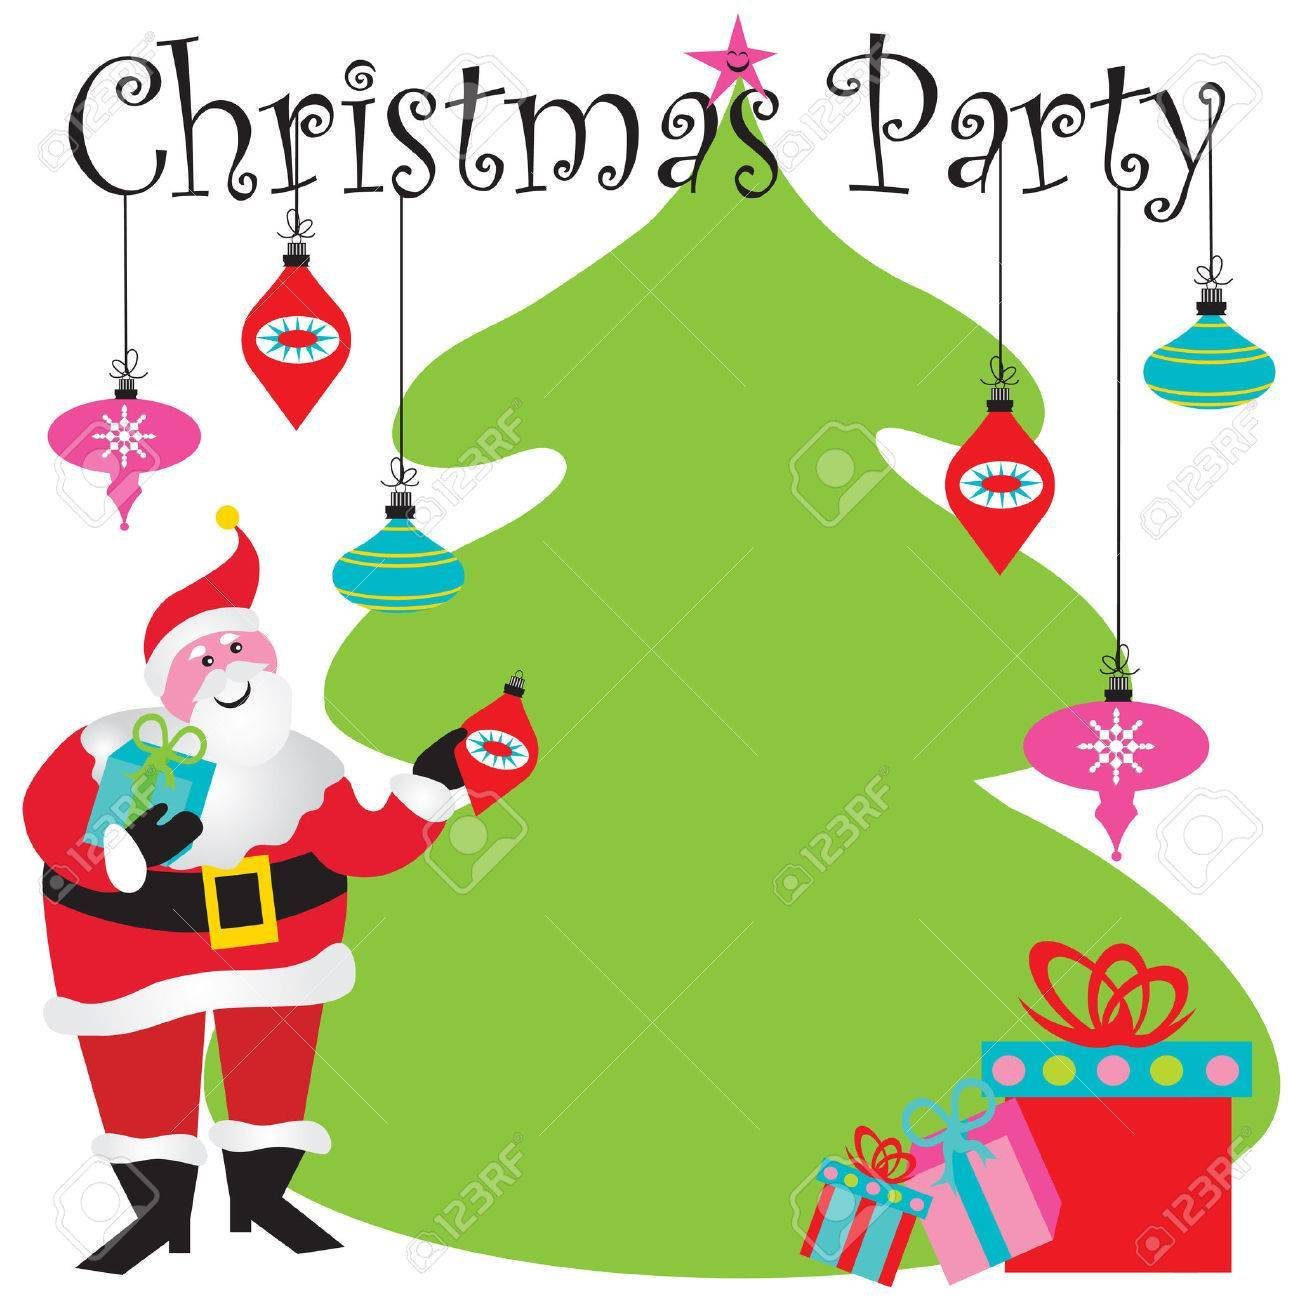 Clipart christmas invitation png black and white library Free christmas party invitation clipart 5 » Clipart Portal png black and white library